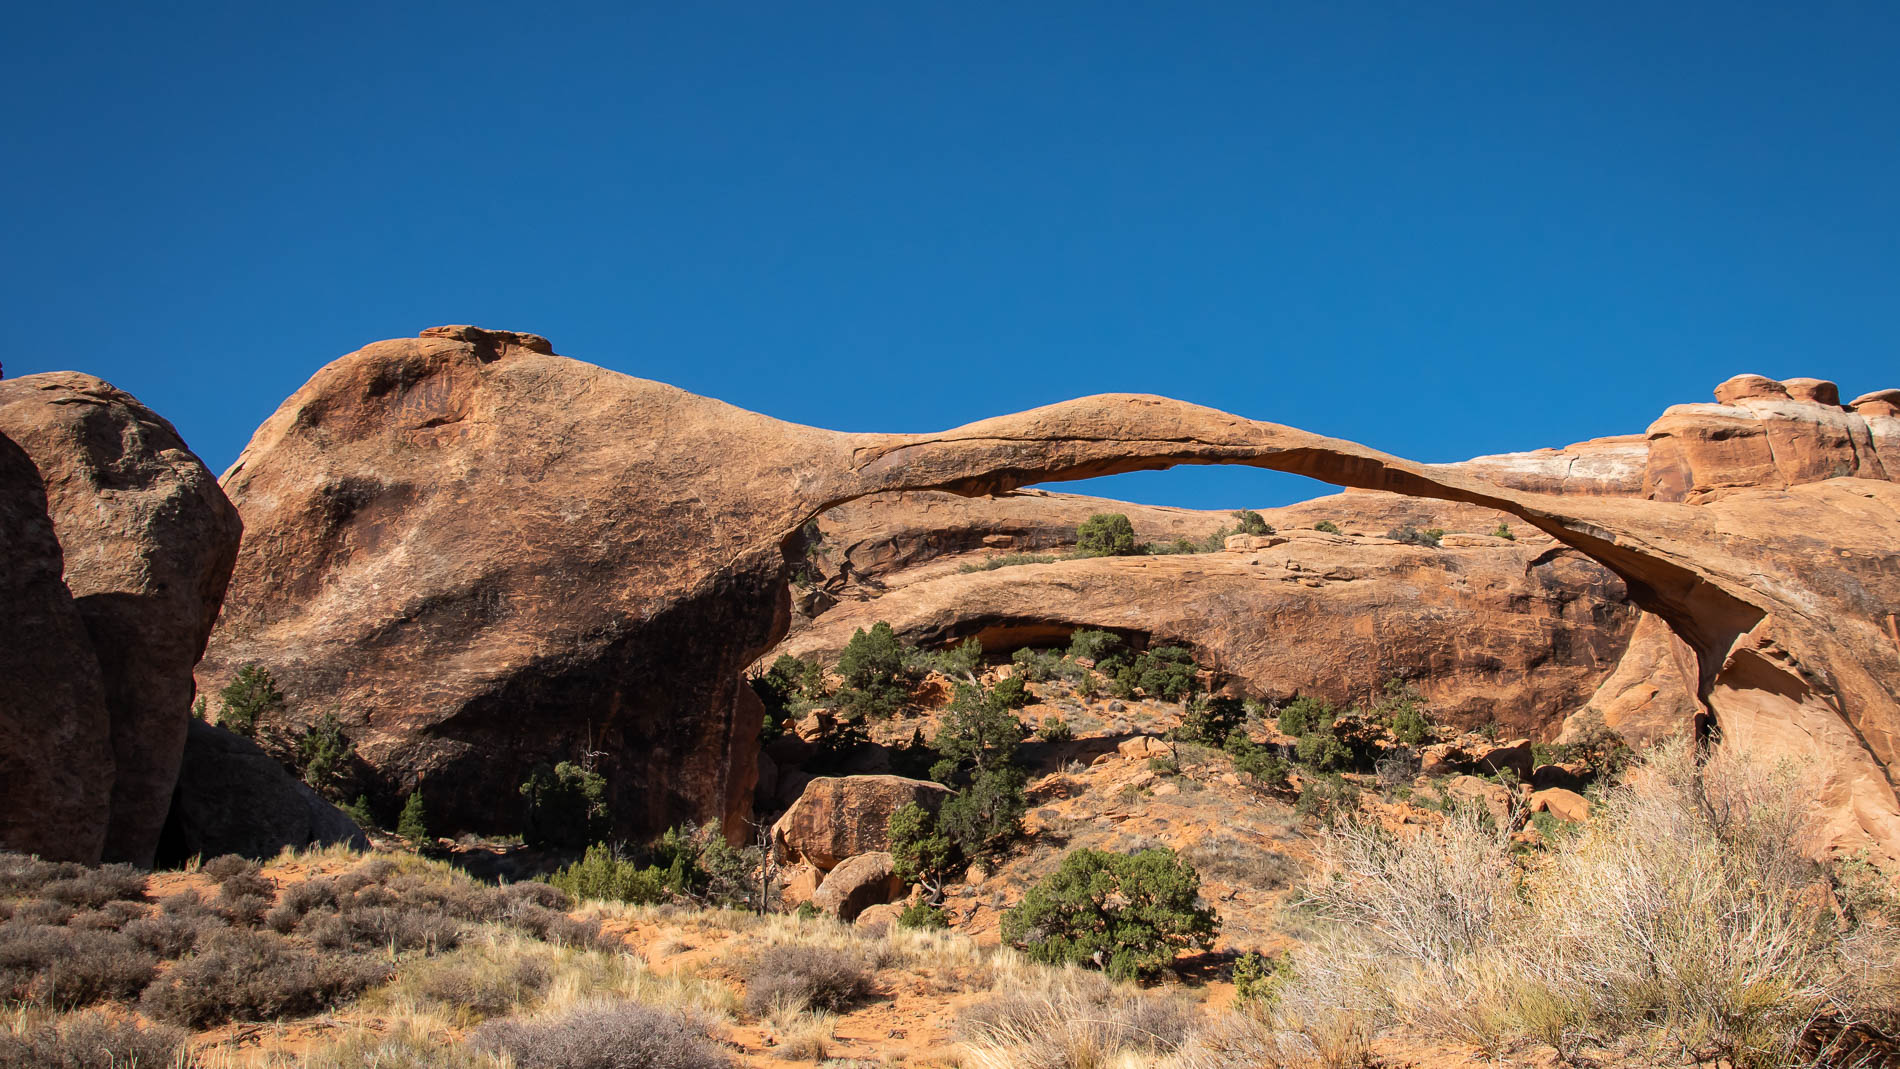 Impressions of the Parks Near Moab